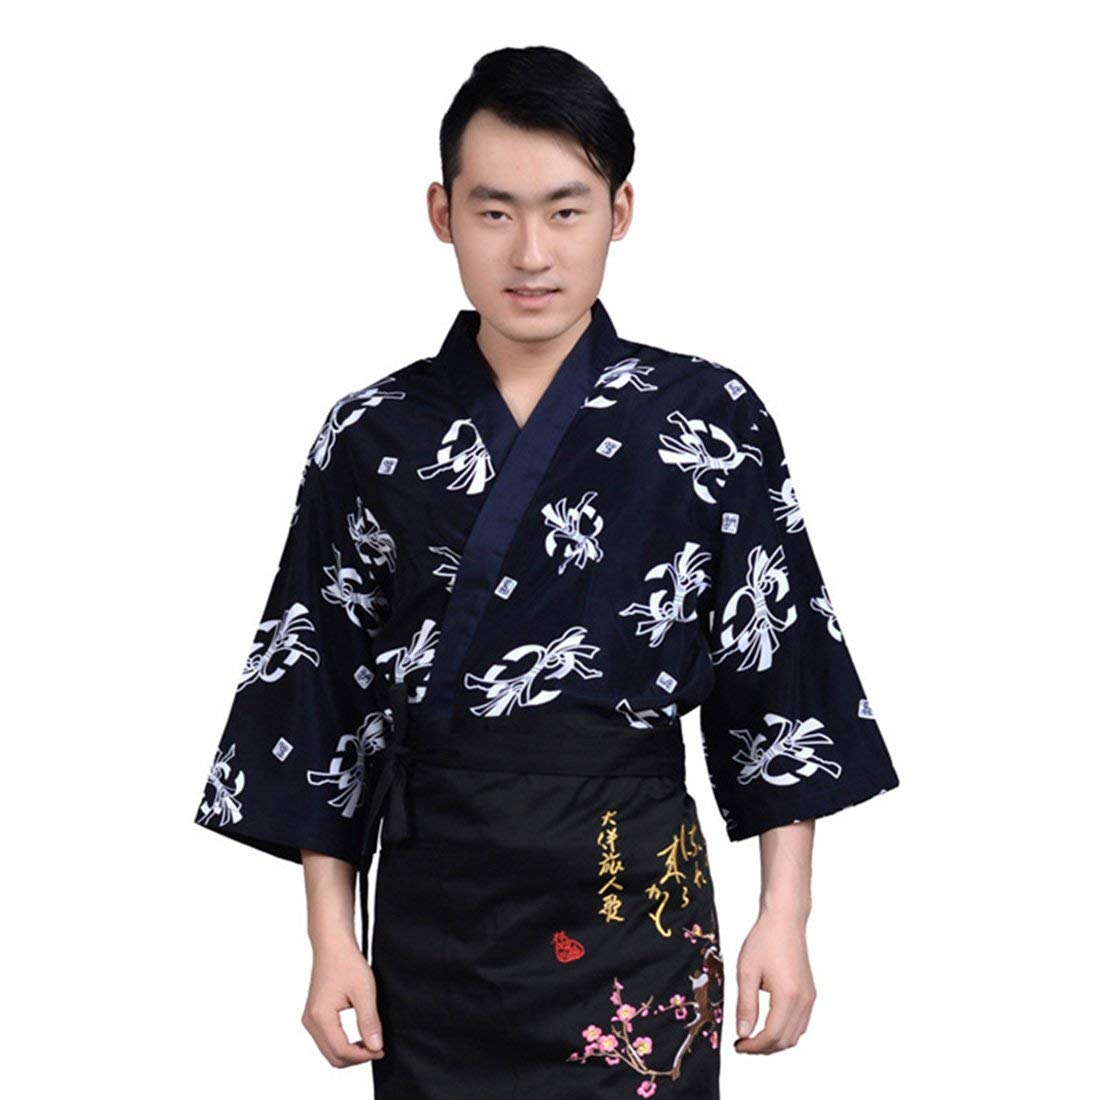 Jiyaru Unisex Sushi Chef Jacket Kimono Japanese Uniform Waiter Coat Workwear